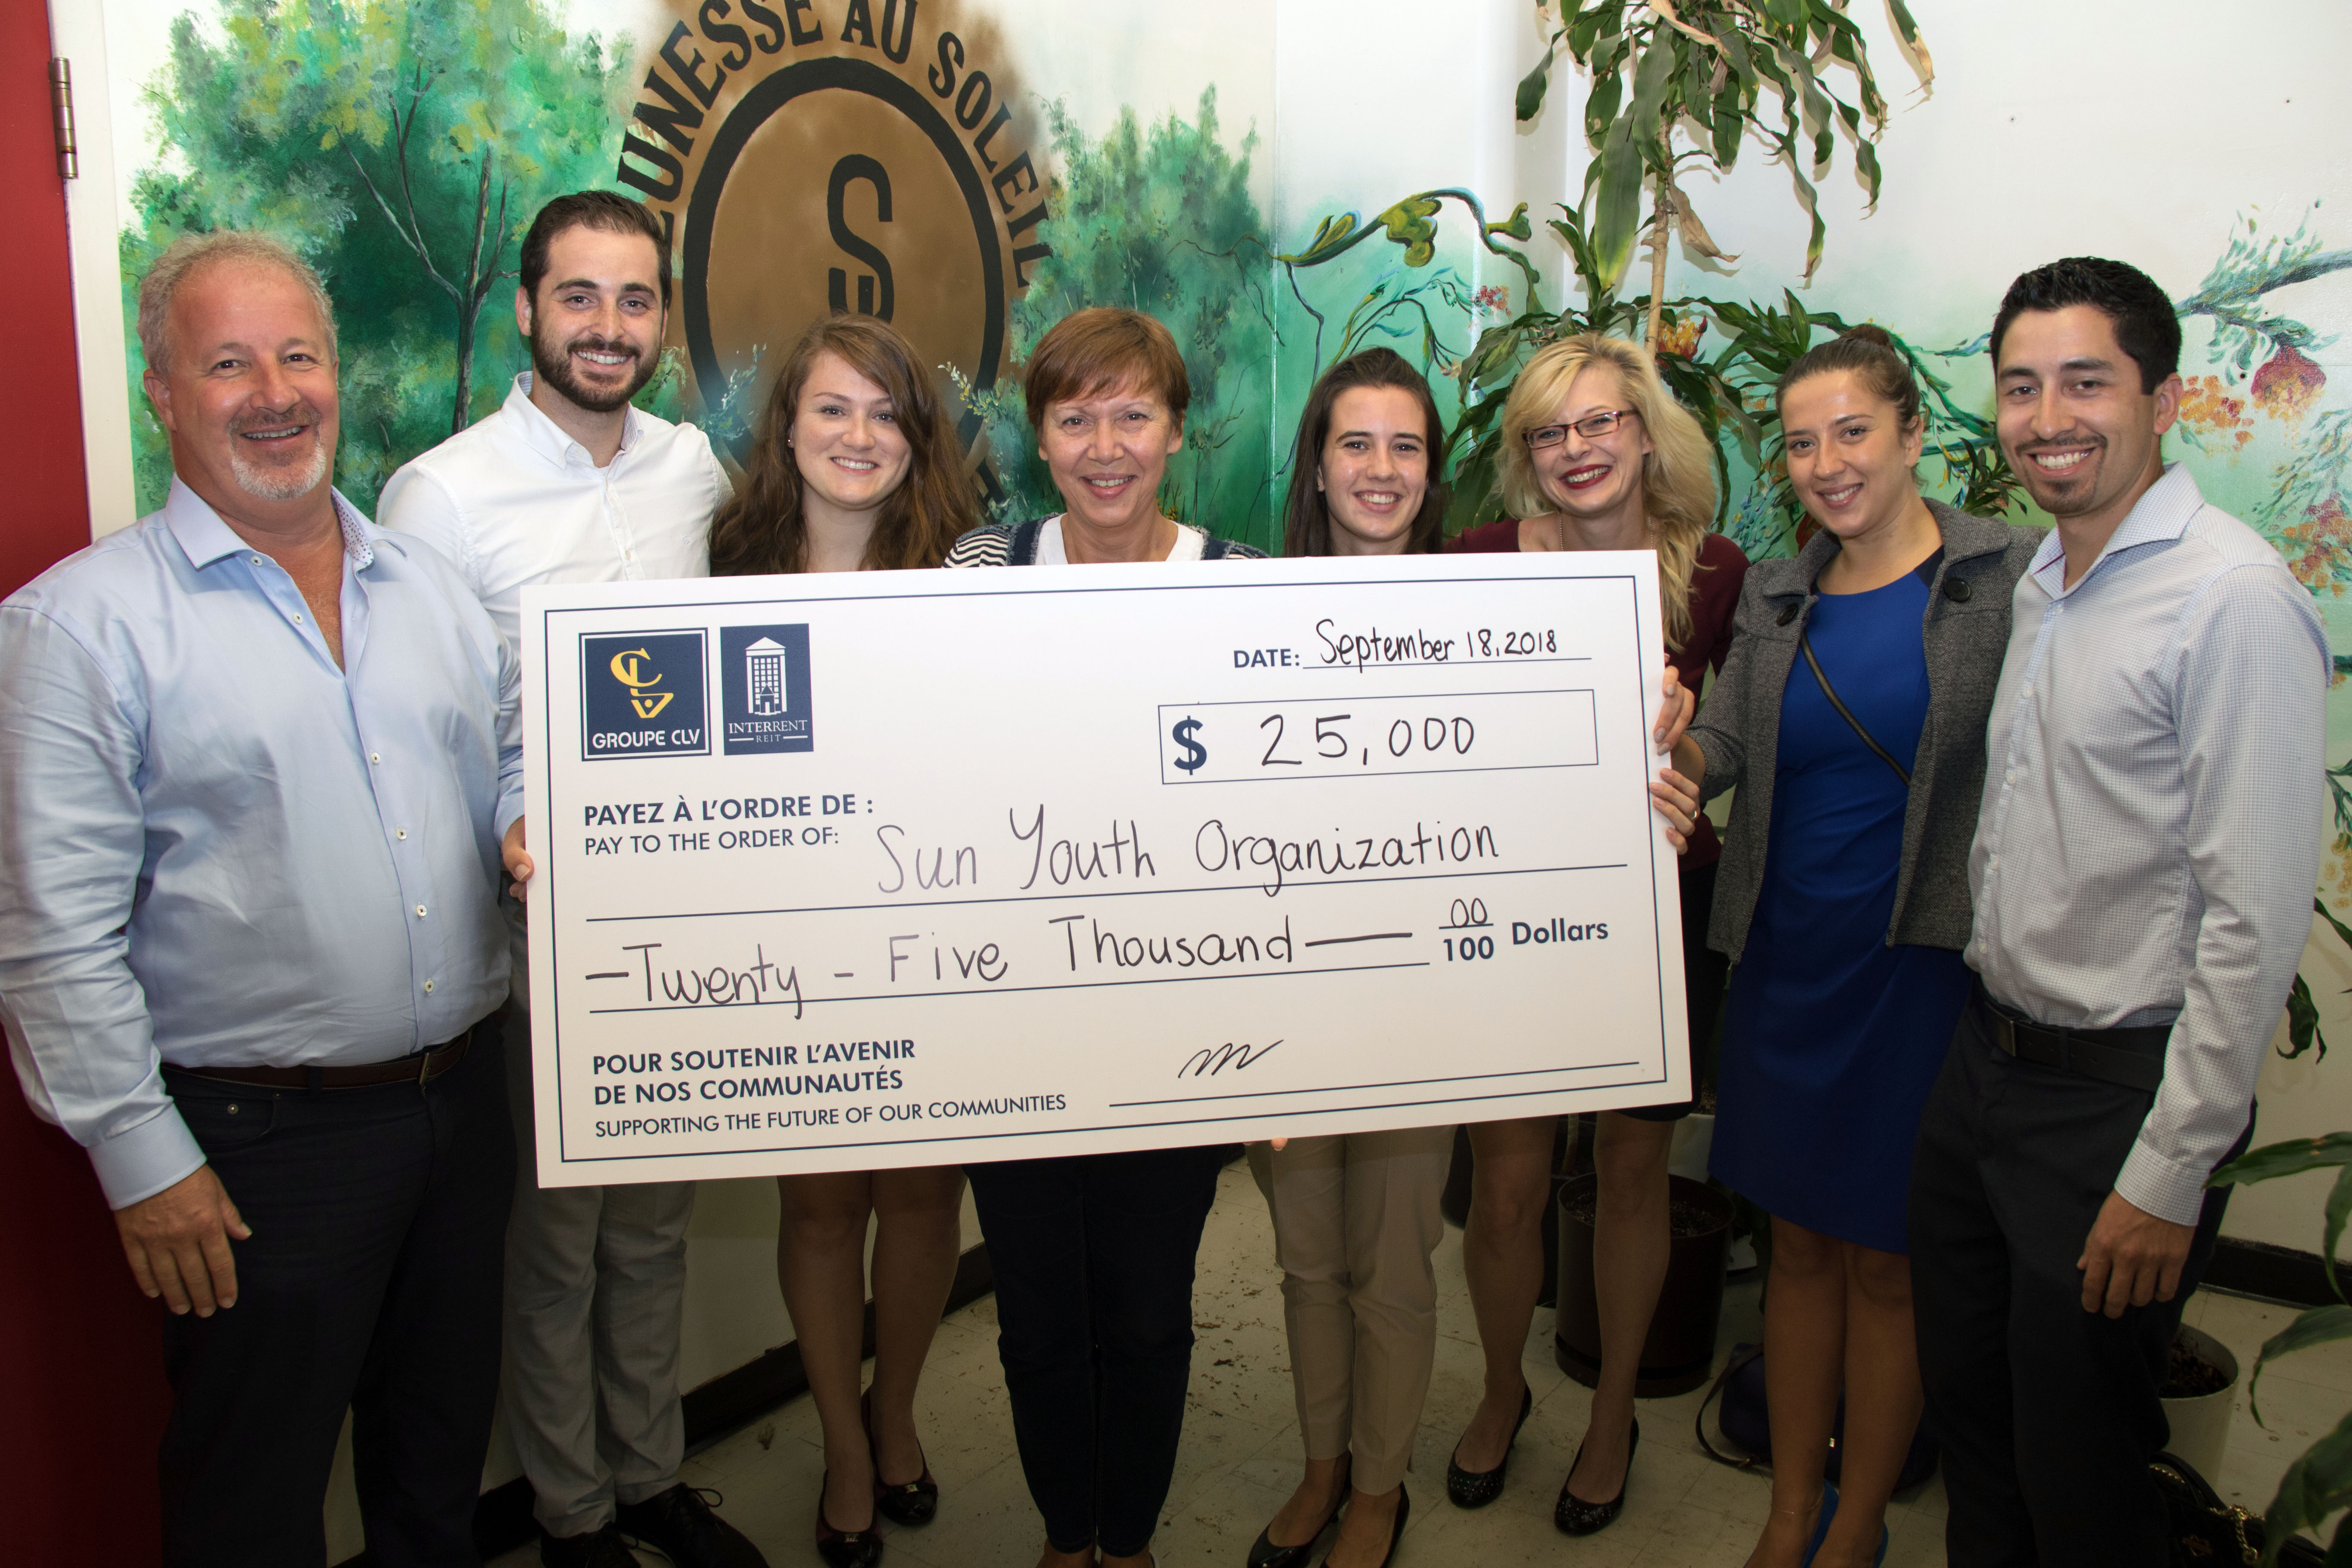 CLV Group and InterRent REIT Donate $25,000 to Sun Youth Organization-Featured Image